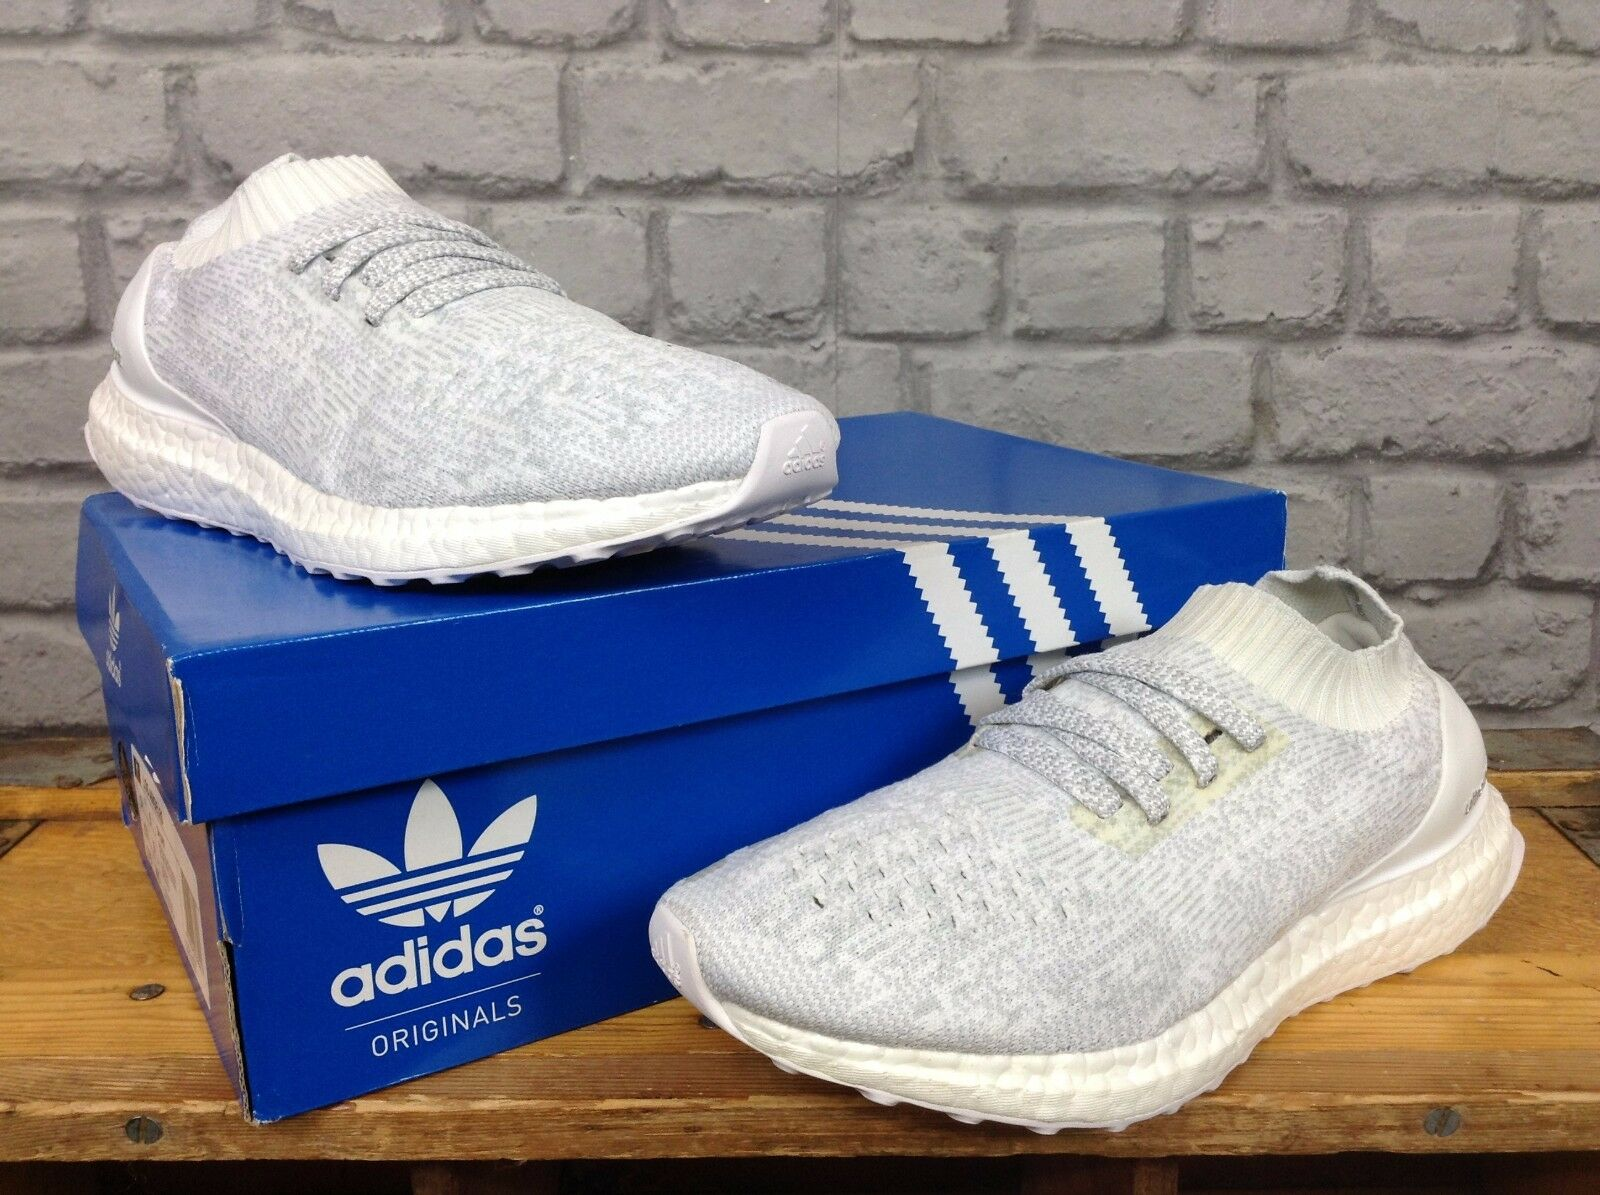 ADIDAS LADIES5 ULTRA BOOST UNCAGED LTD CHILDRENS blanc  gris TRAINERS CHILDRENS LTD b75c68